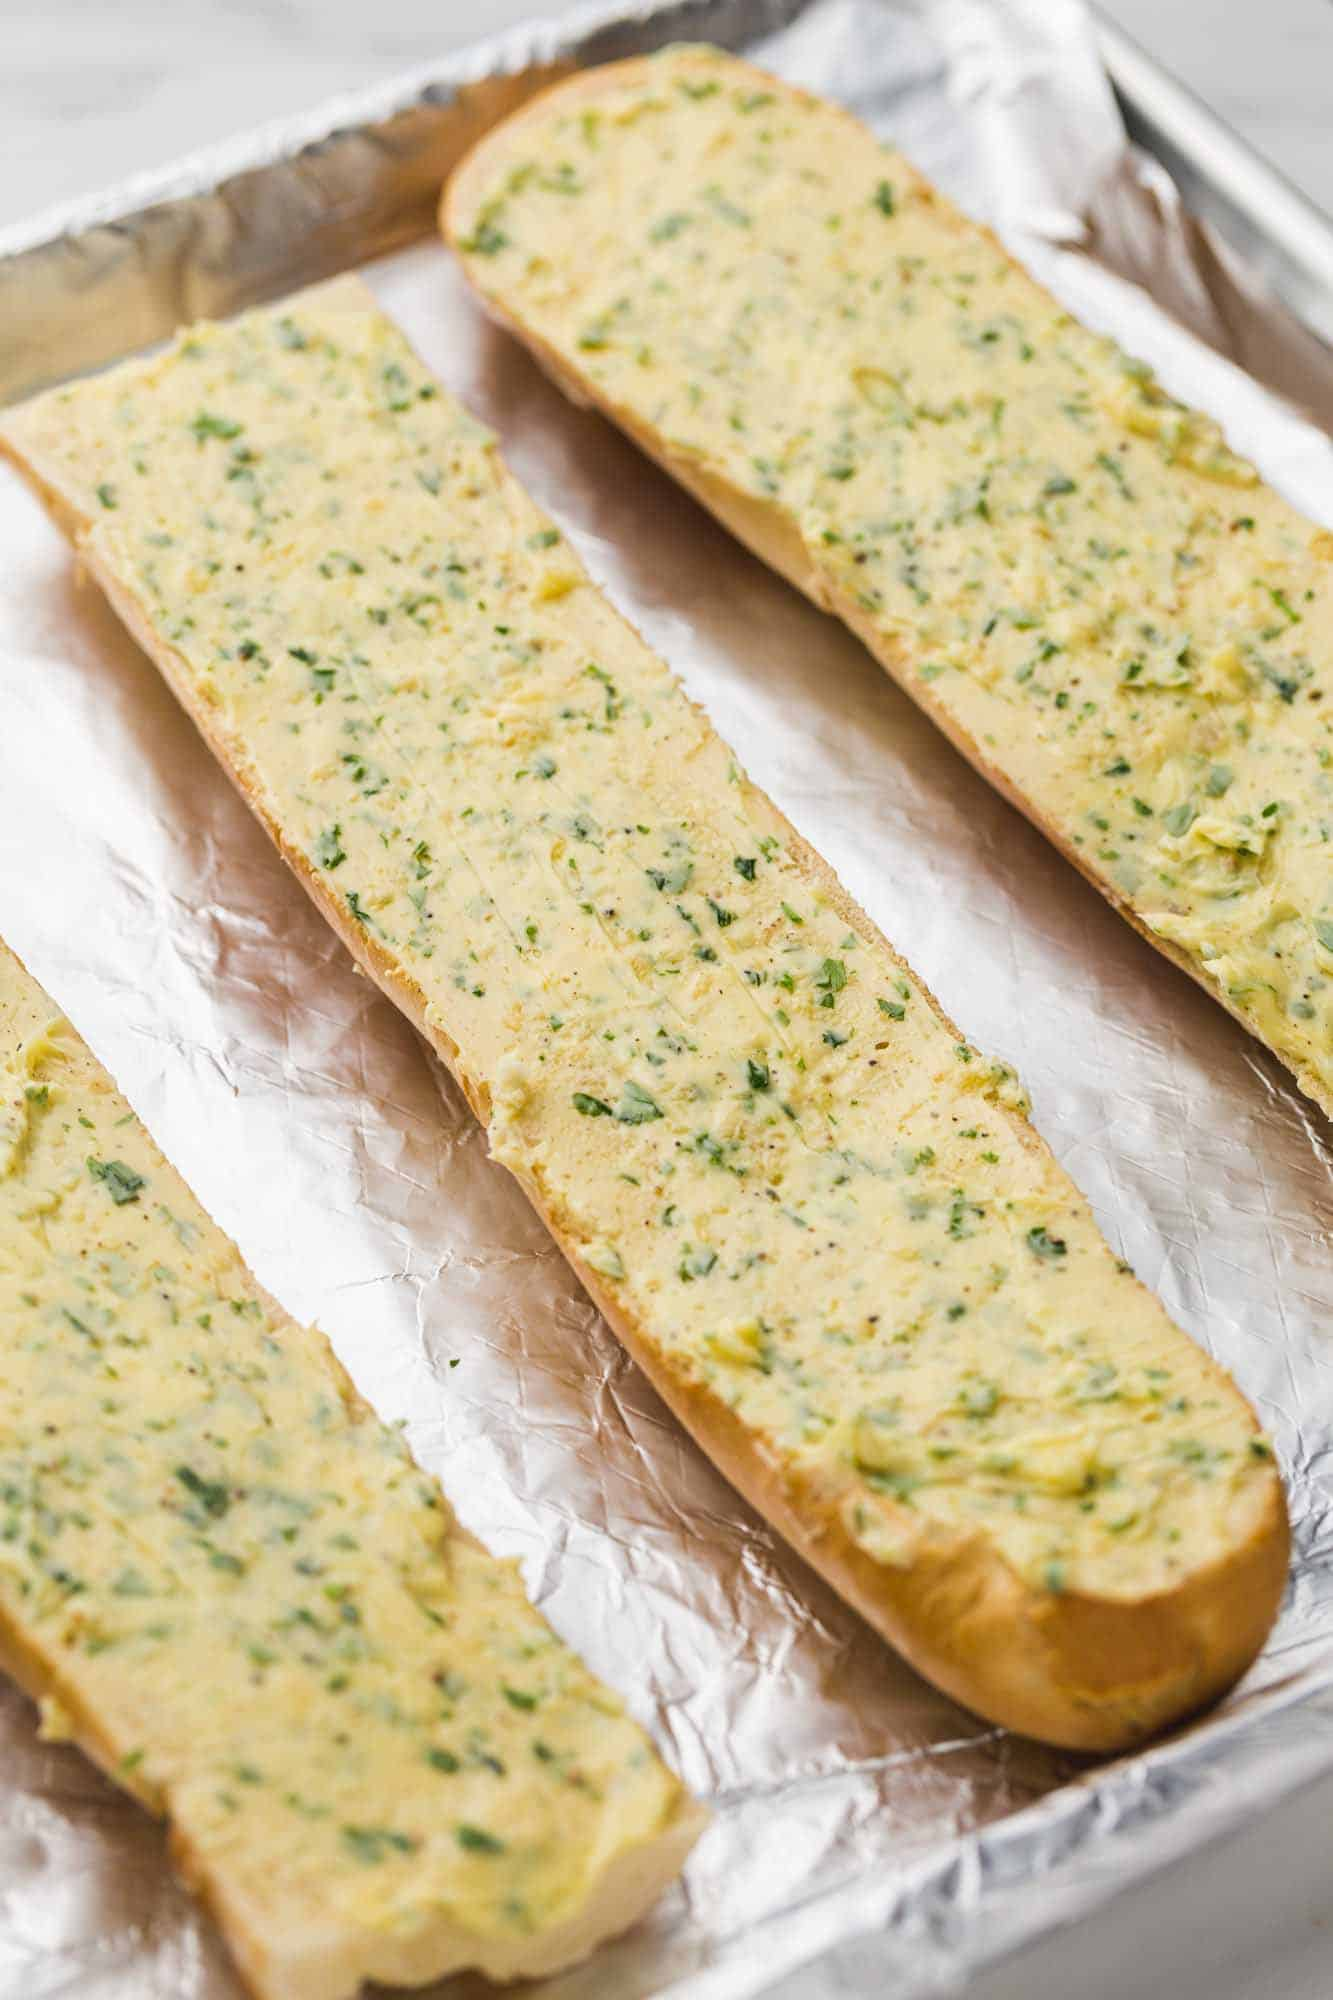 Garlic bread with the garlic spread before baking, placed on a foil lined baking sheet.